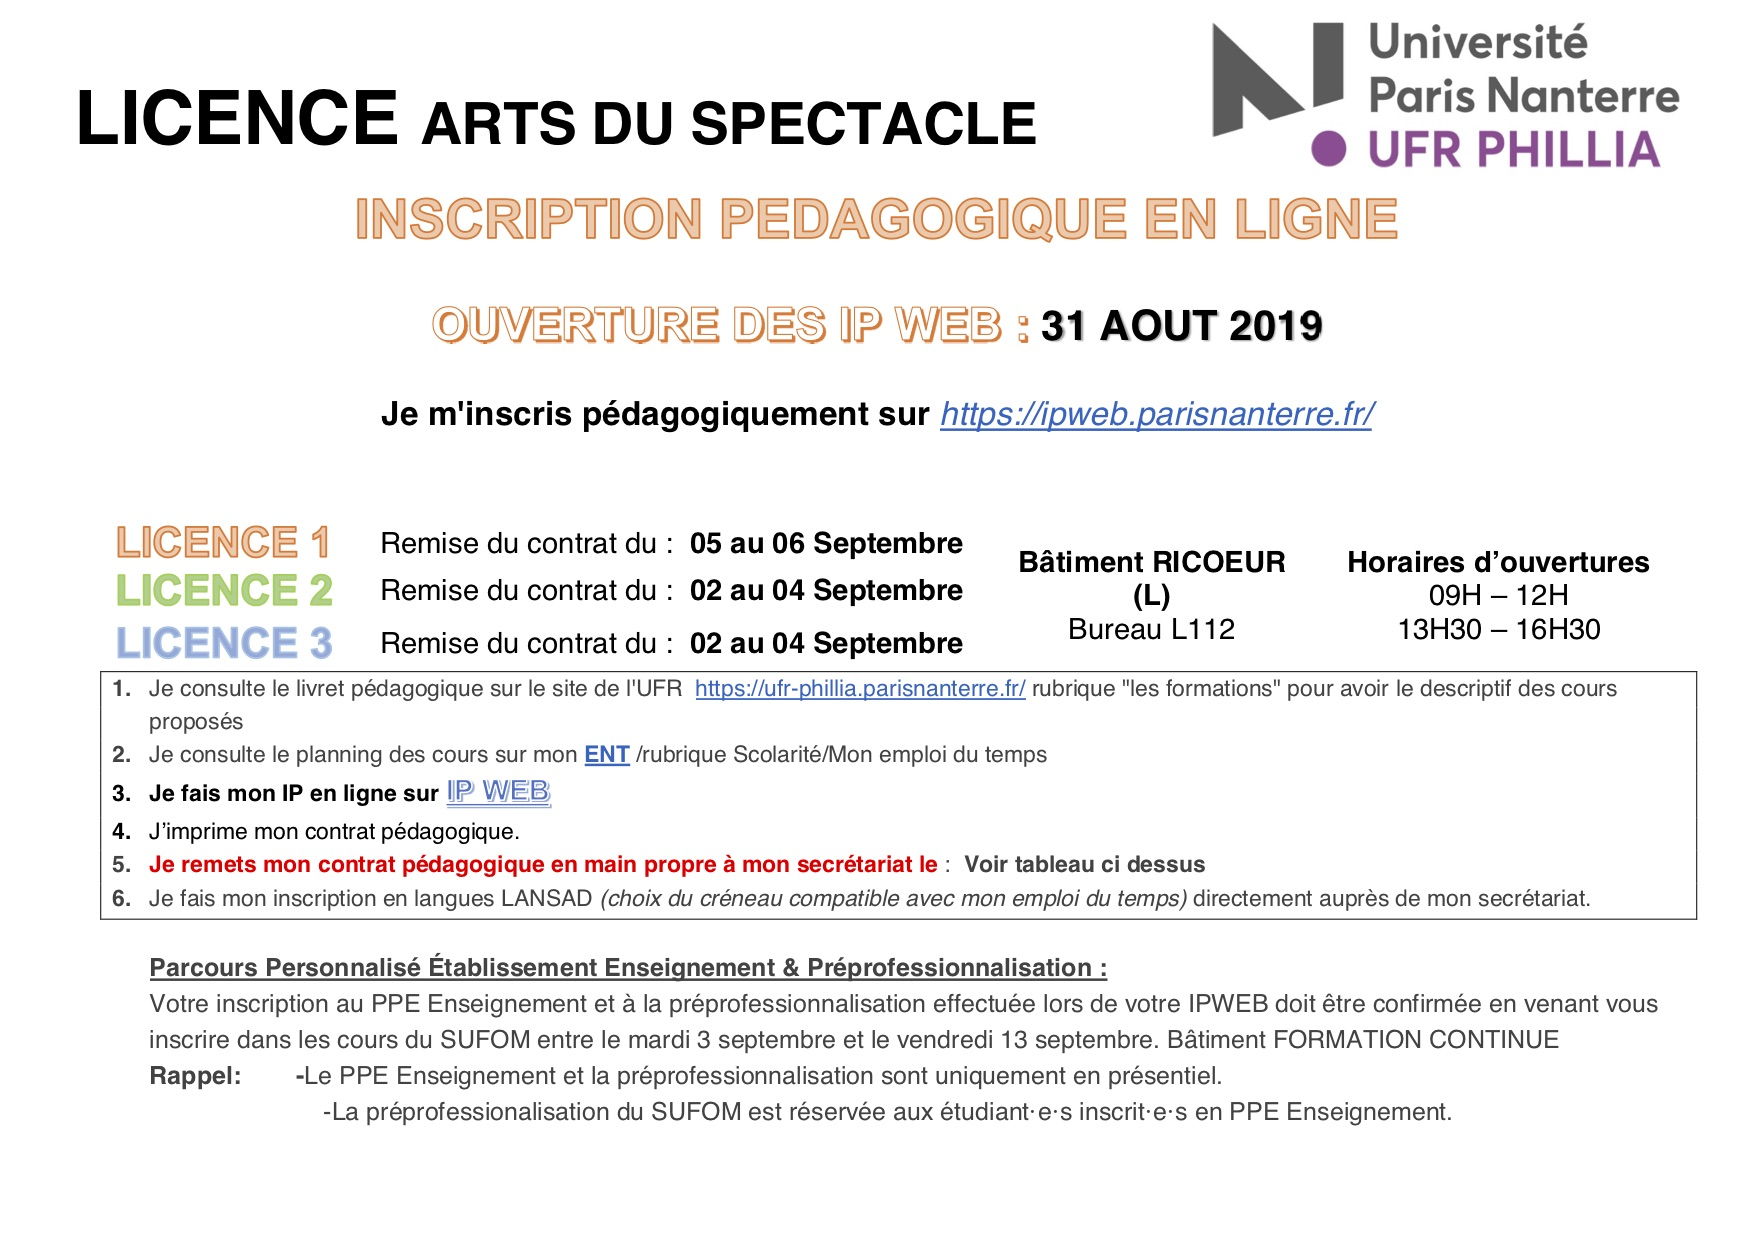 Calendrier Paris Nanterre.Departement Arts Du Spectacle Inscriptions Pedagogiques